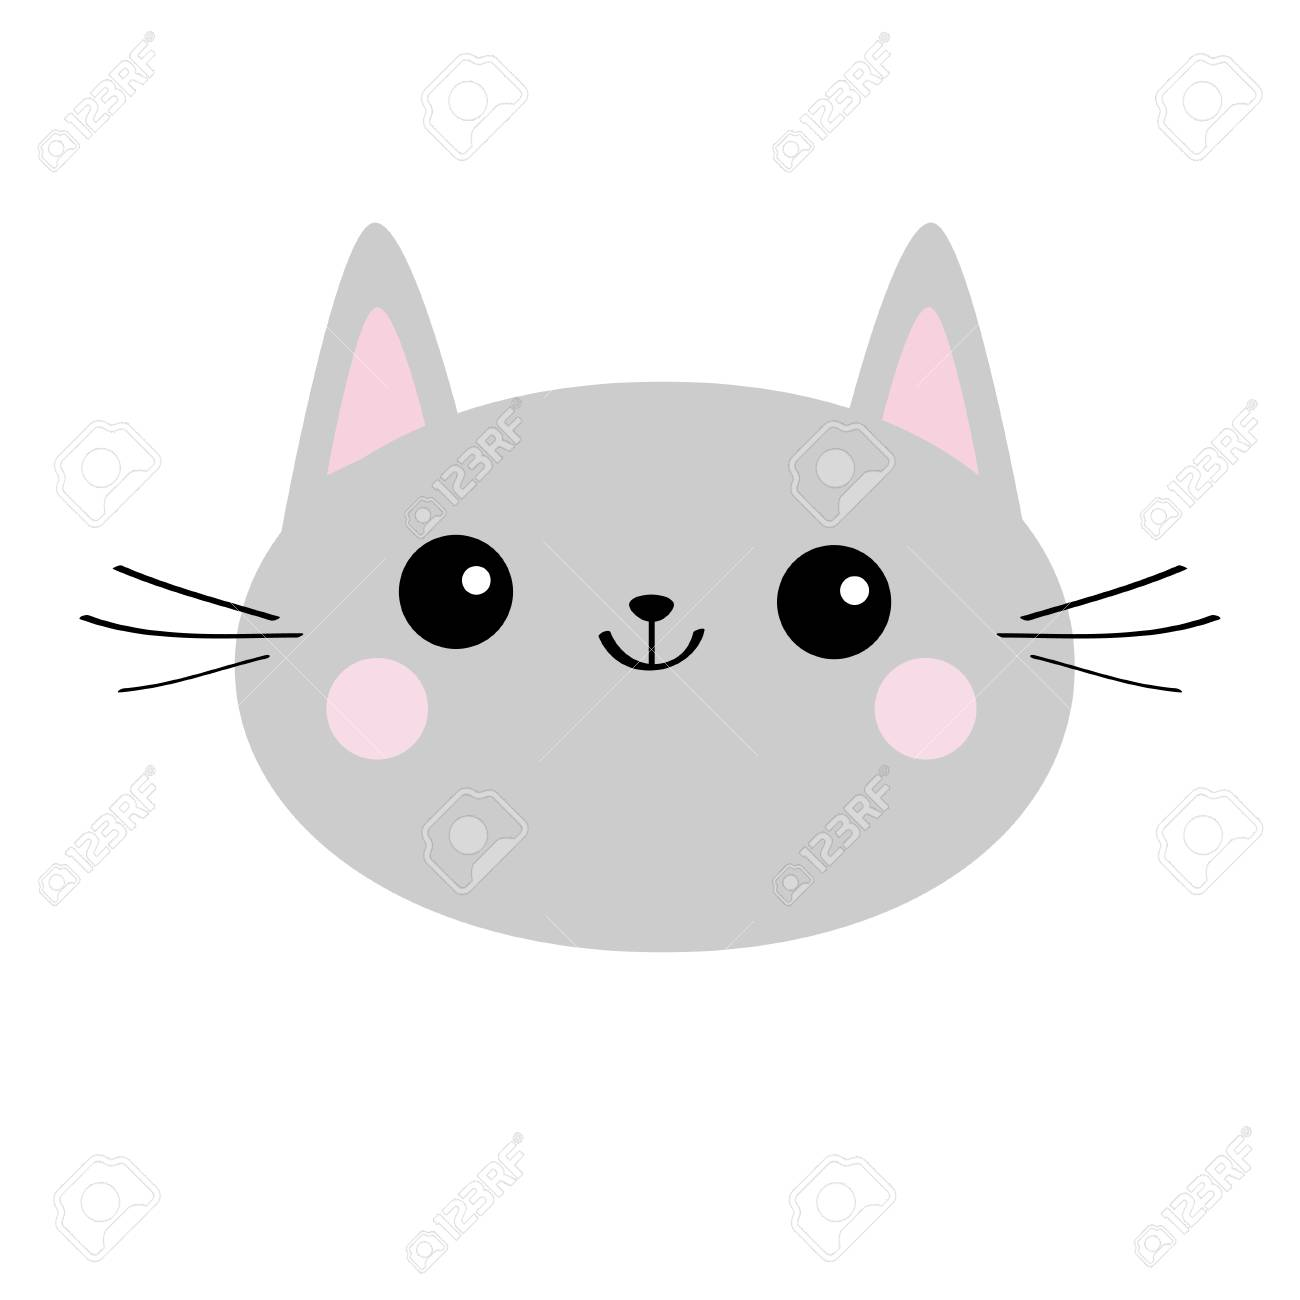 Gray Cat Head Face Silhouette Icon Cute Cartoon Kitty Character Royalty Free Cliparts Vectors And Stock Illustration Image 103004728